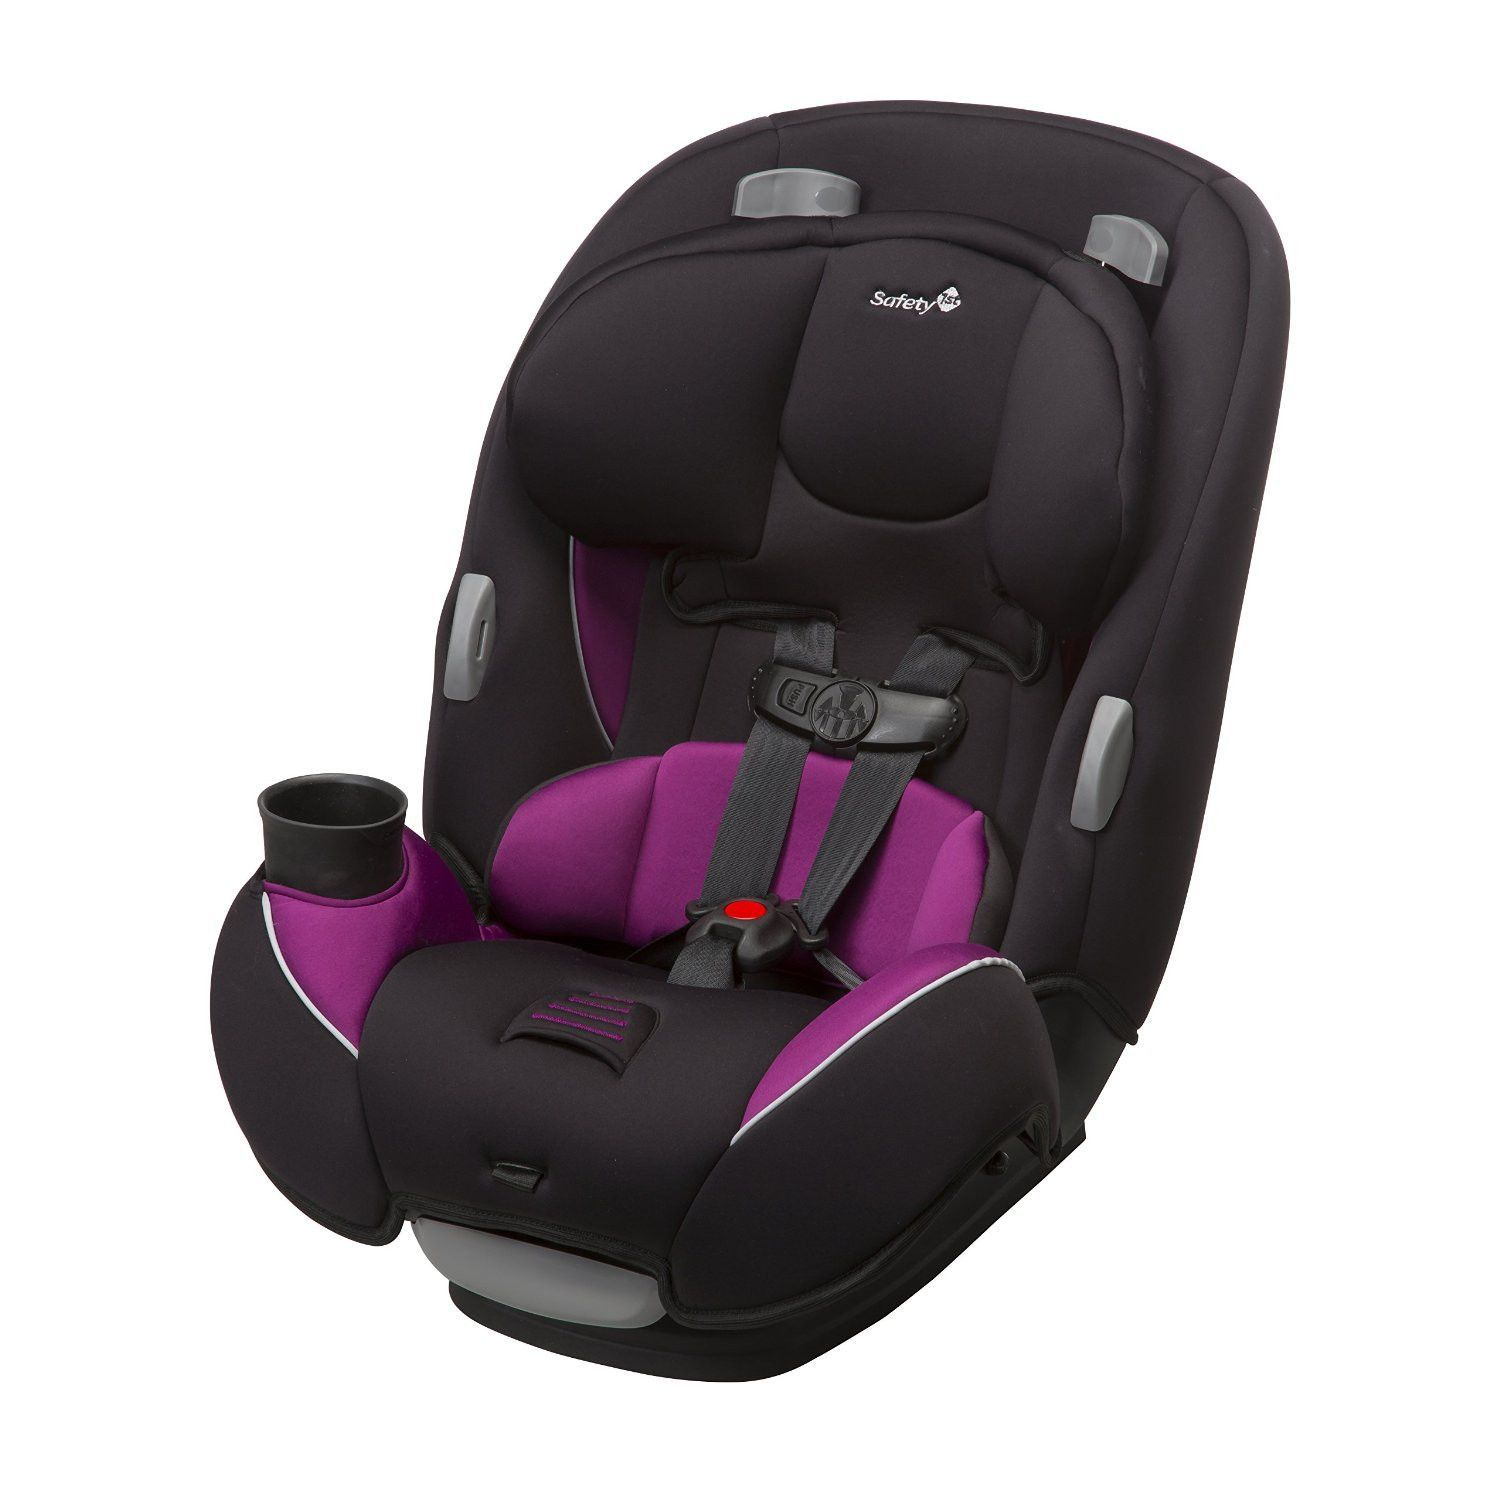 From baby to big kid the Continuum 3-in-1 car seat is there for your